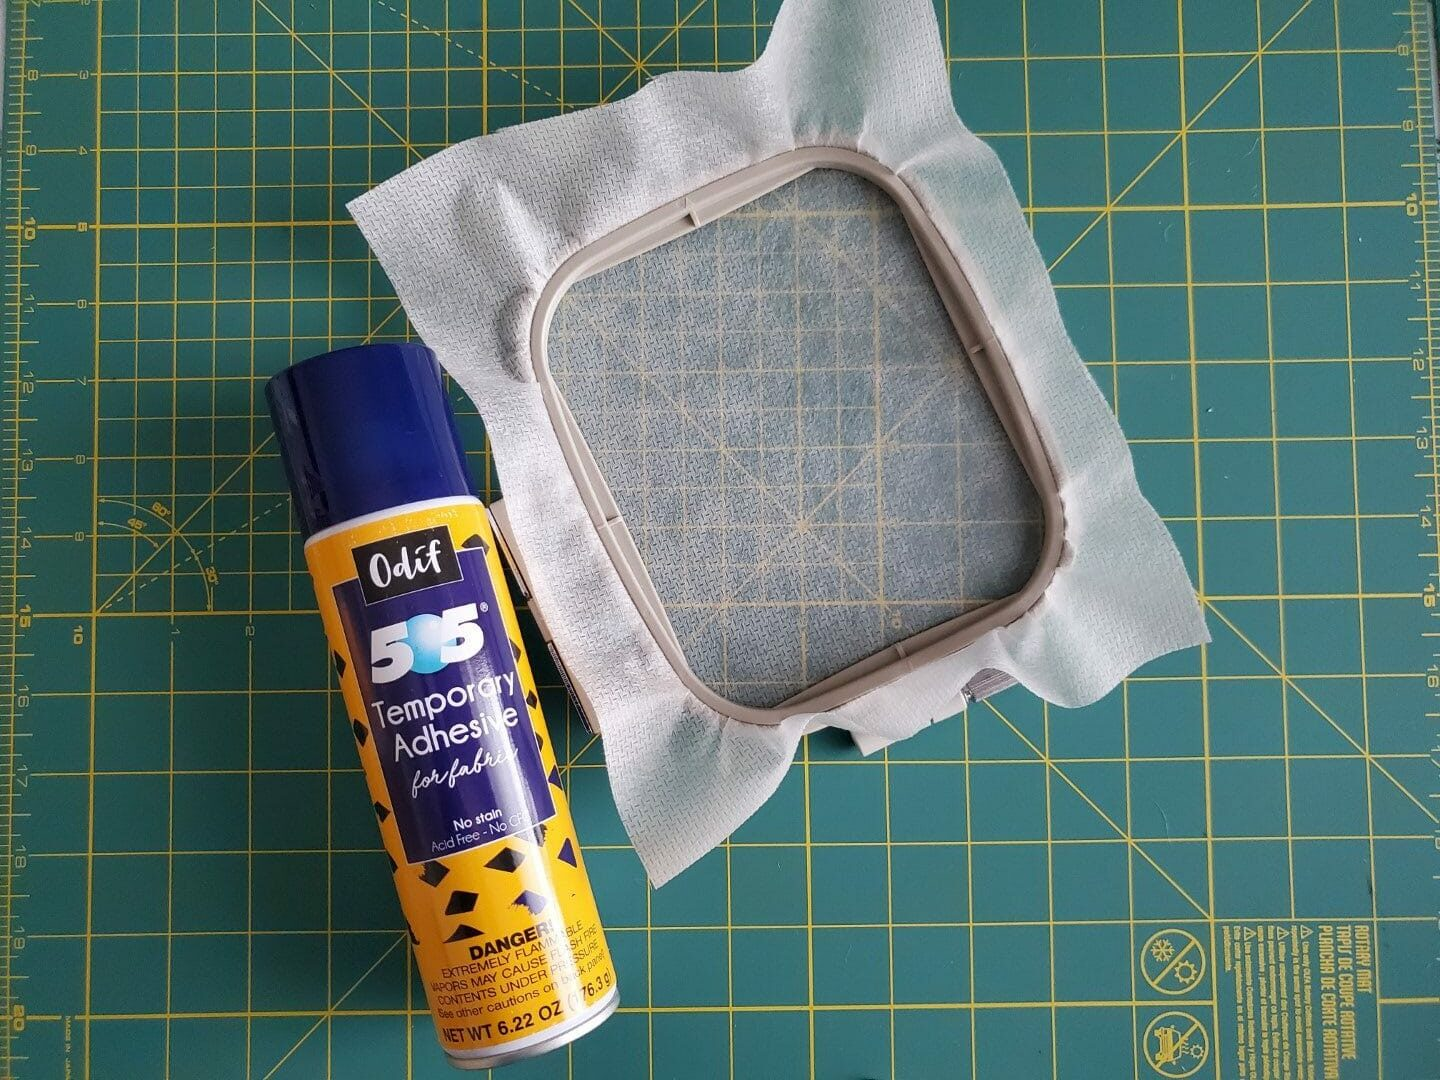 adhering fabric to stabilizer